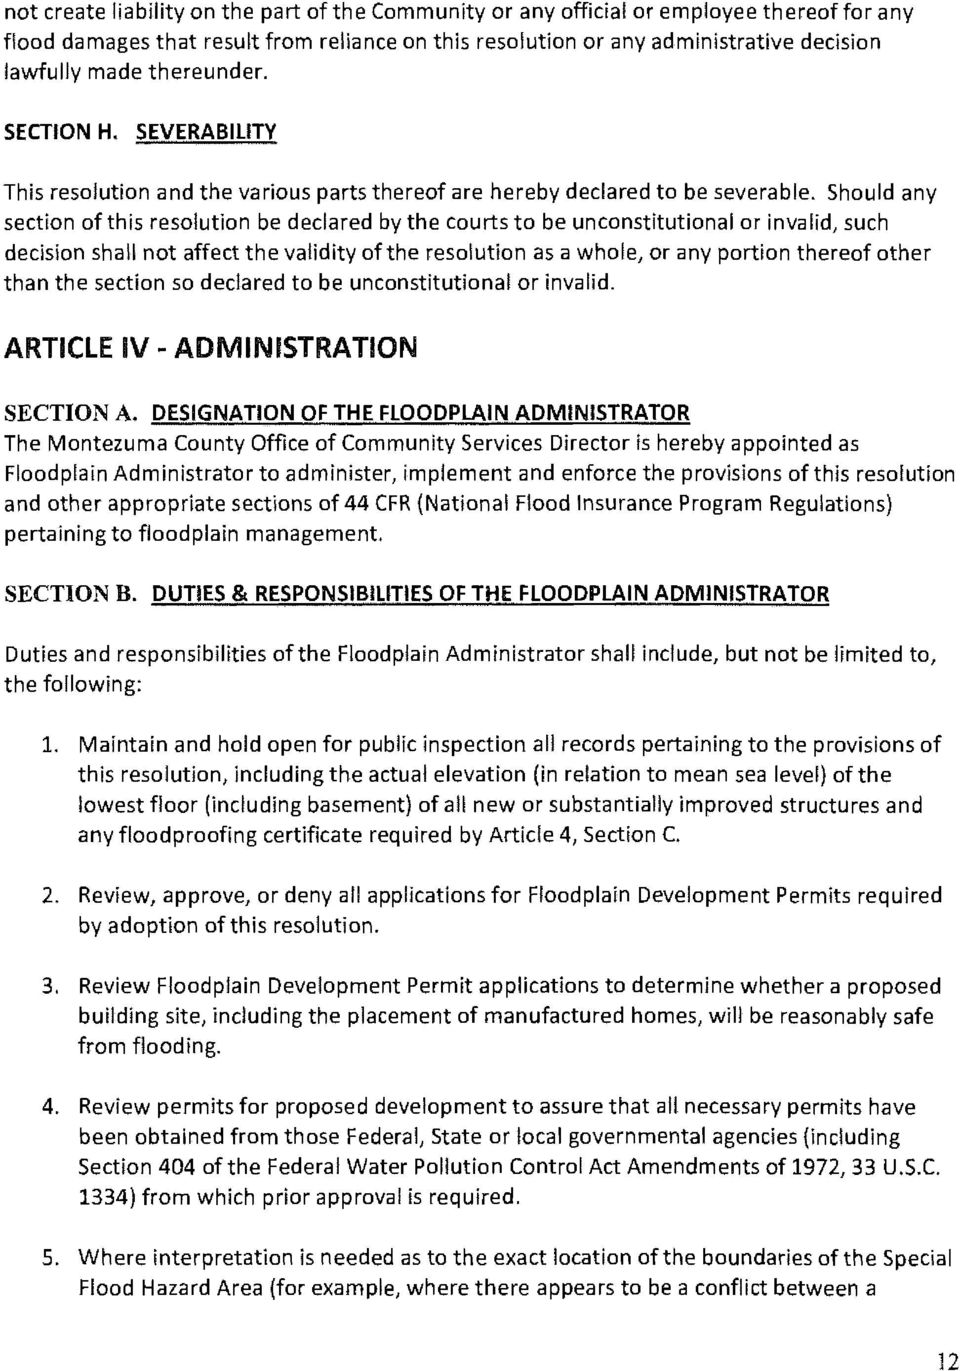 Should any section of this resolution be declared by the courts to be unconstitutional or invalid, such decision shall not affect the validity of the resolution as a whole, or any portion thereof